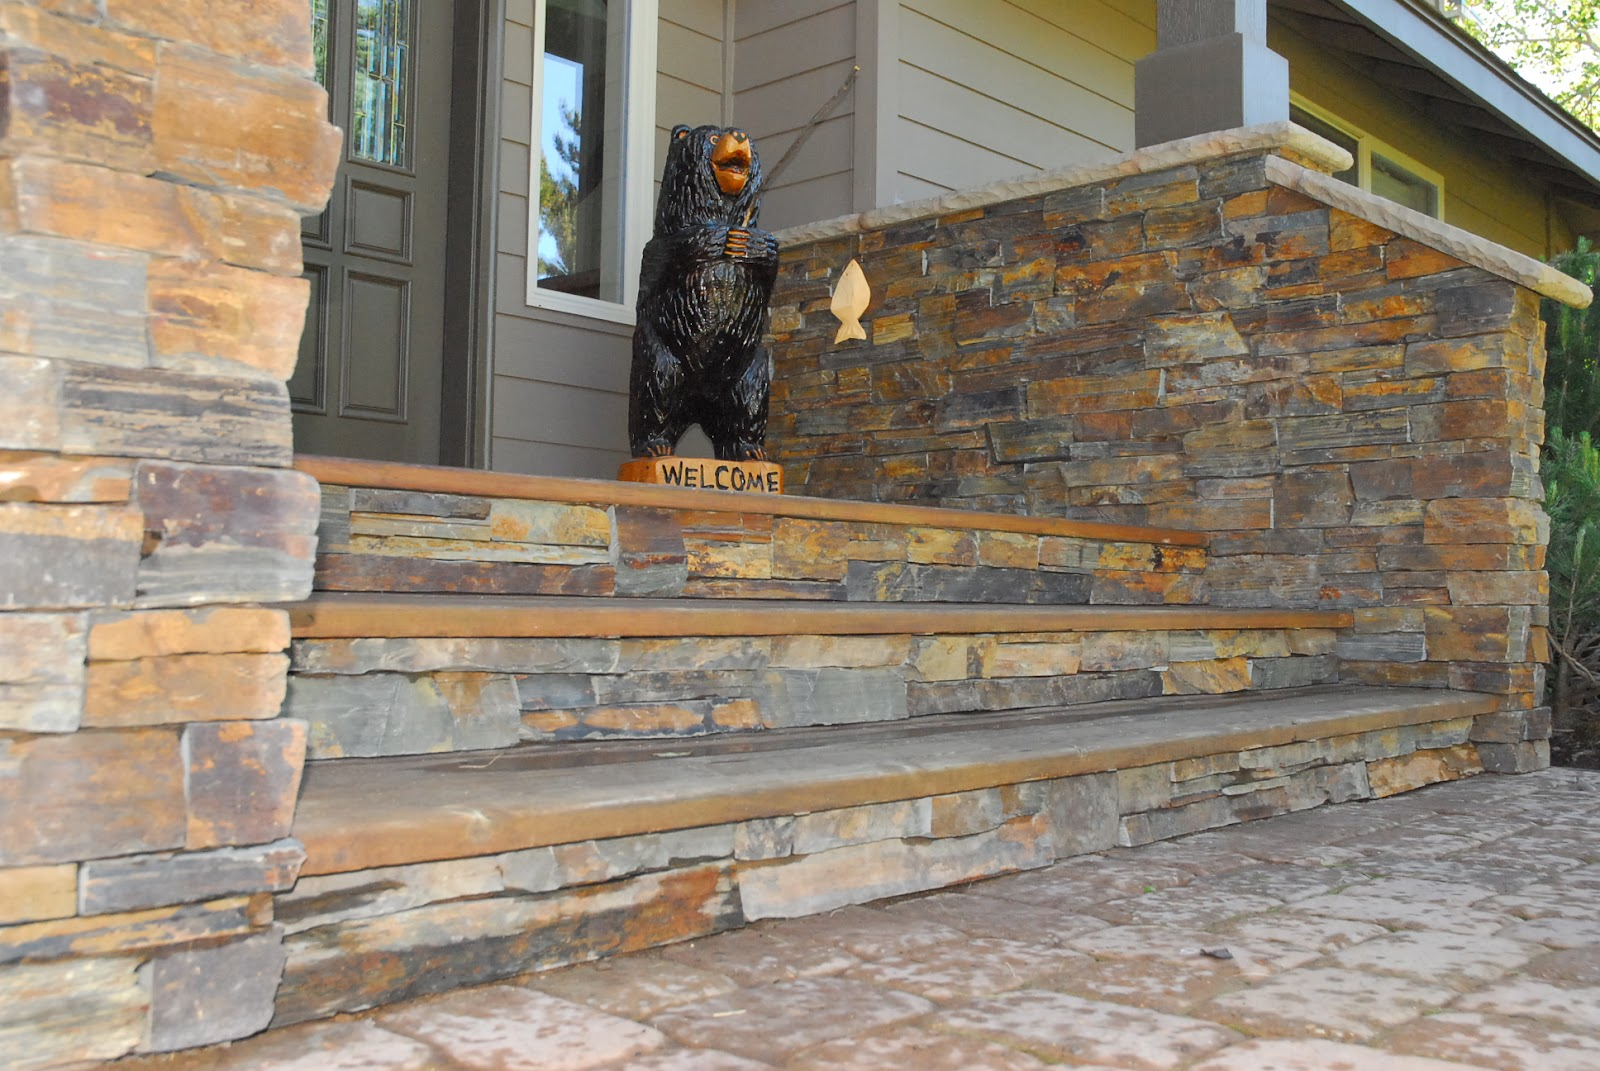 Calexia Autumn Horizon Ledgestone Natural Stone Thin Veneer Installation  With KB Industries Wall Caps And Watertable Sills.